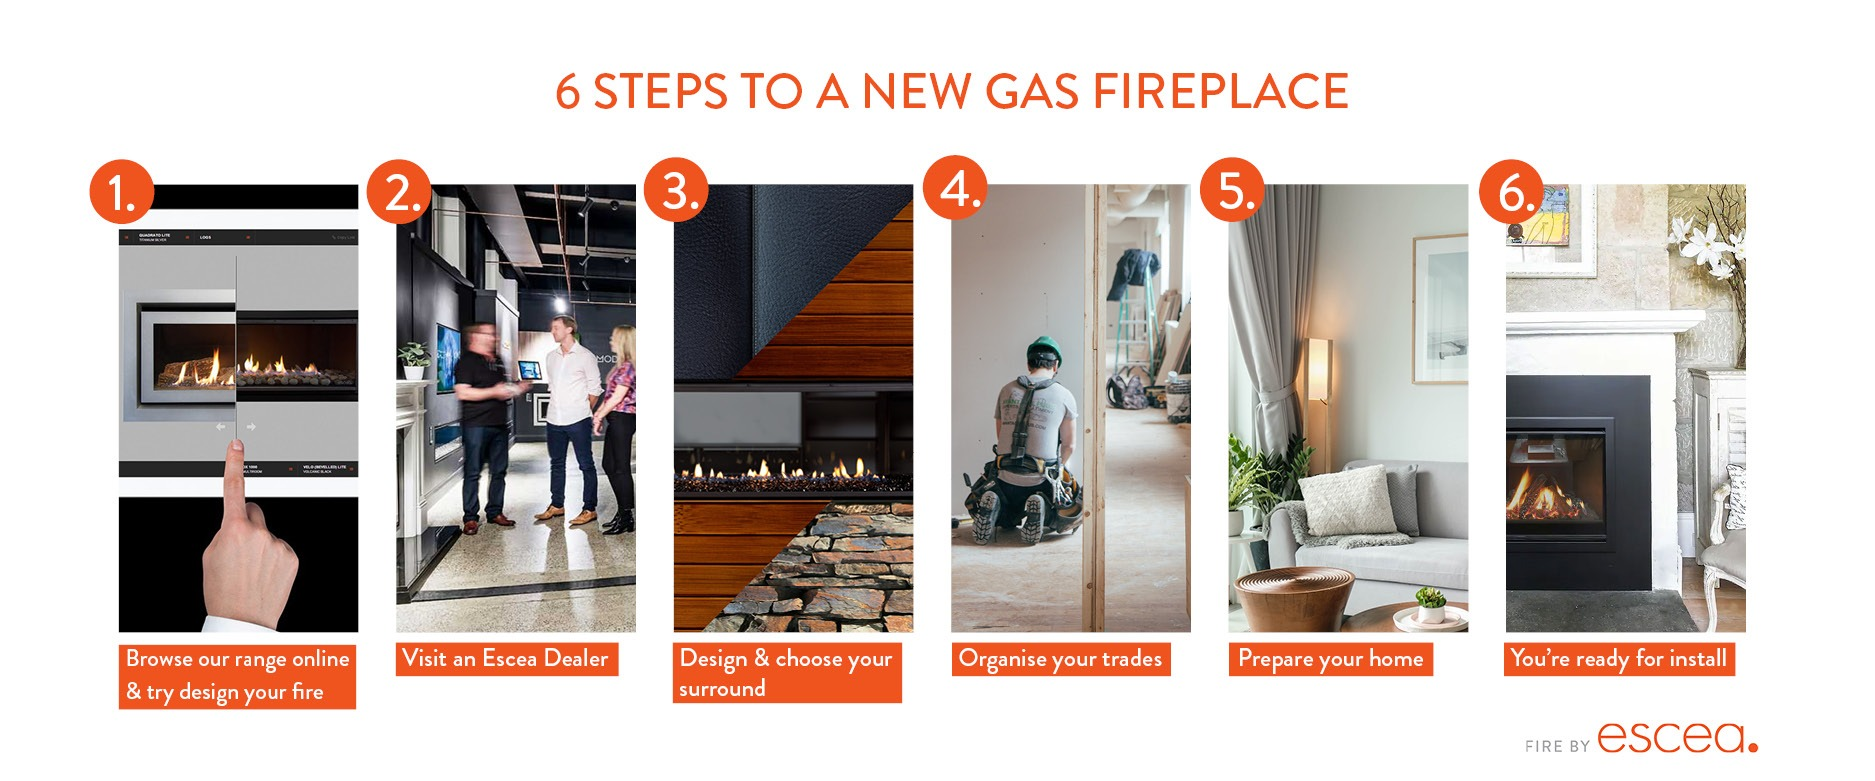 6 steps to a new gas fireplace with escea_1